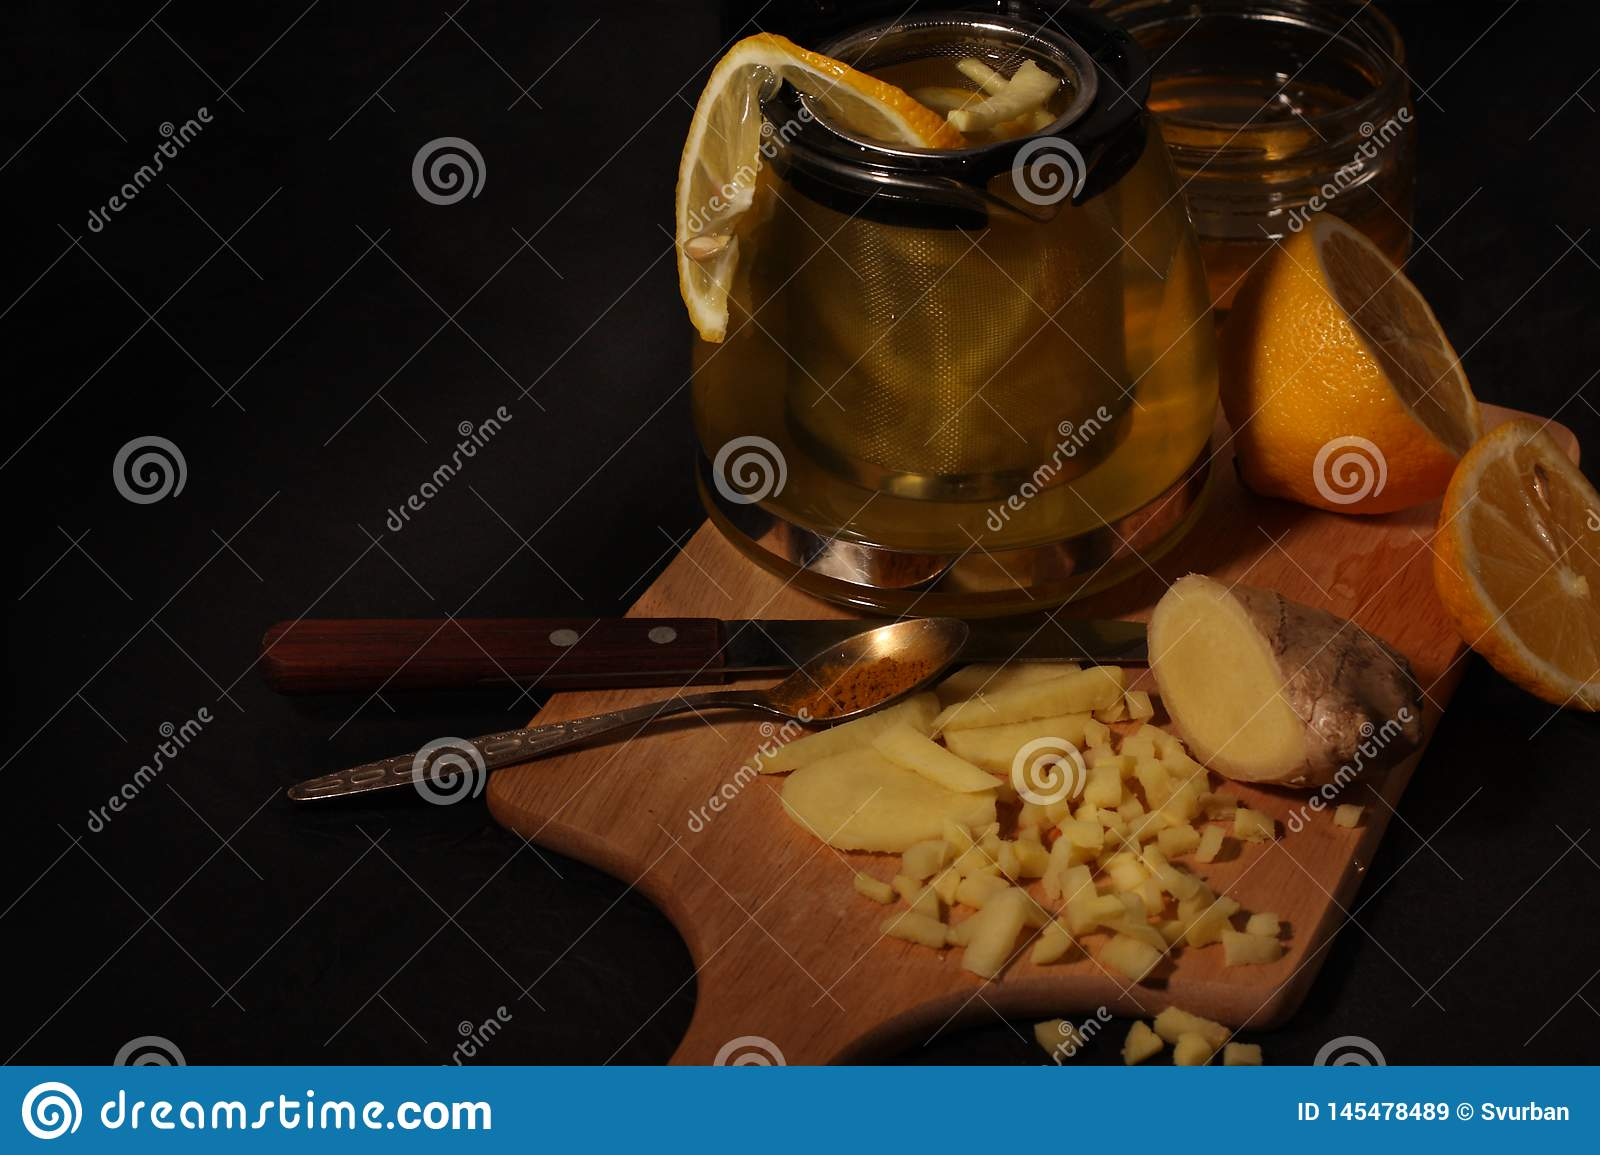 Lemon Ginger Tea with Honey